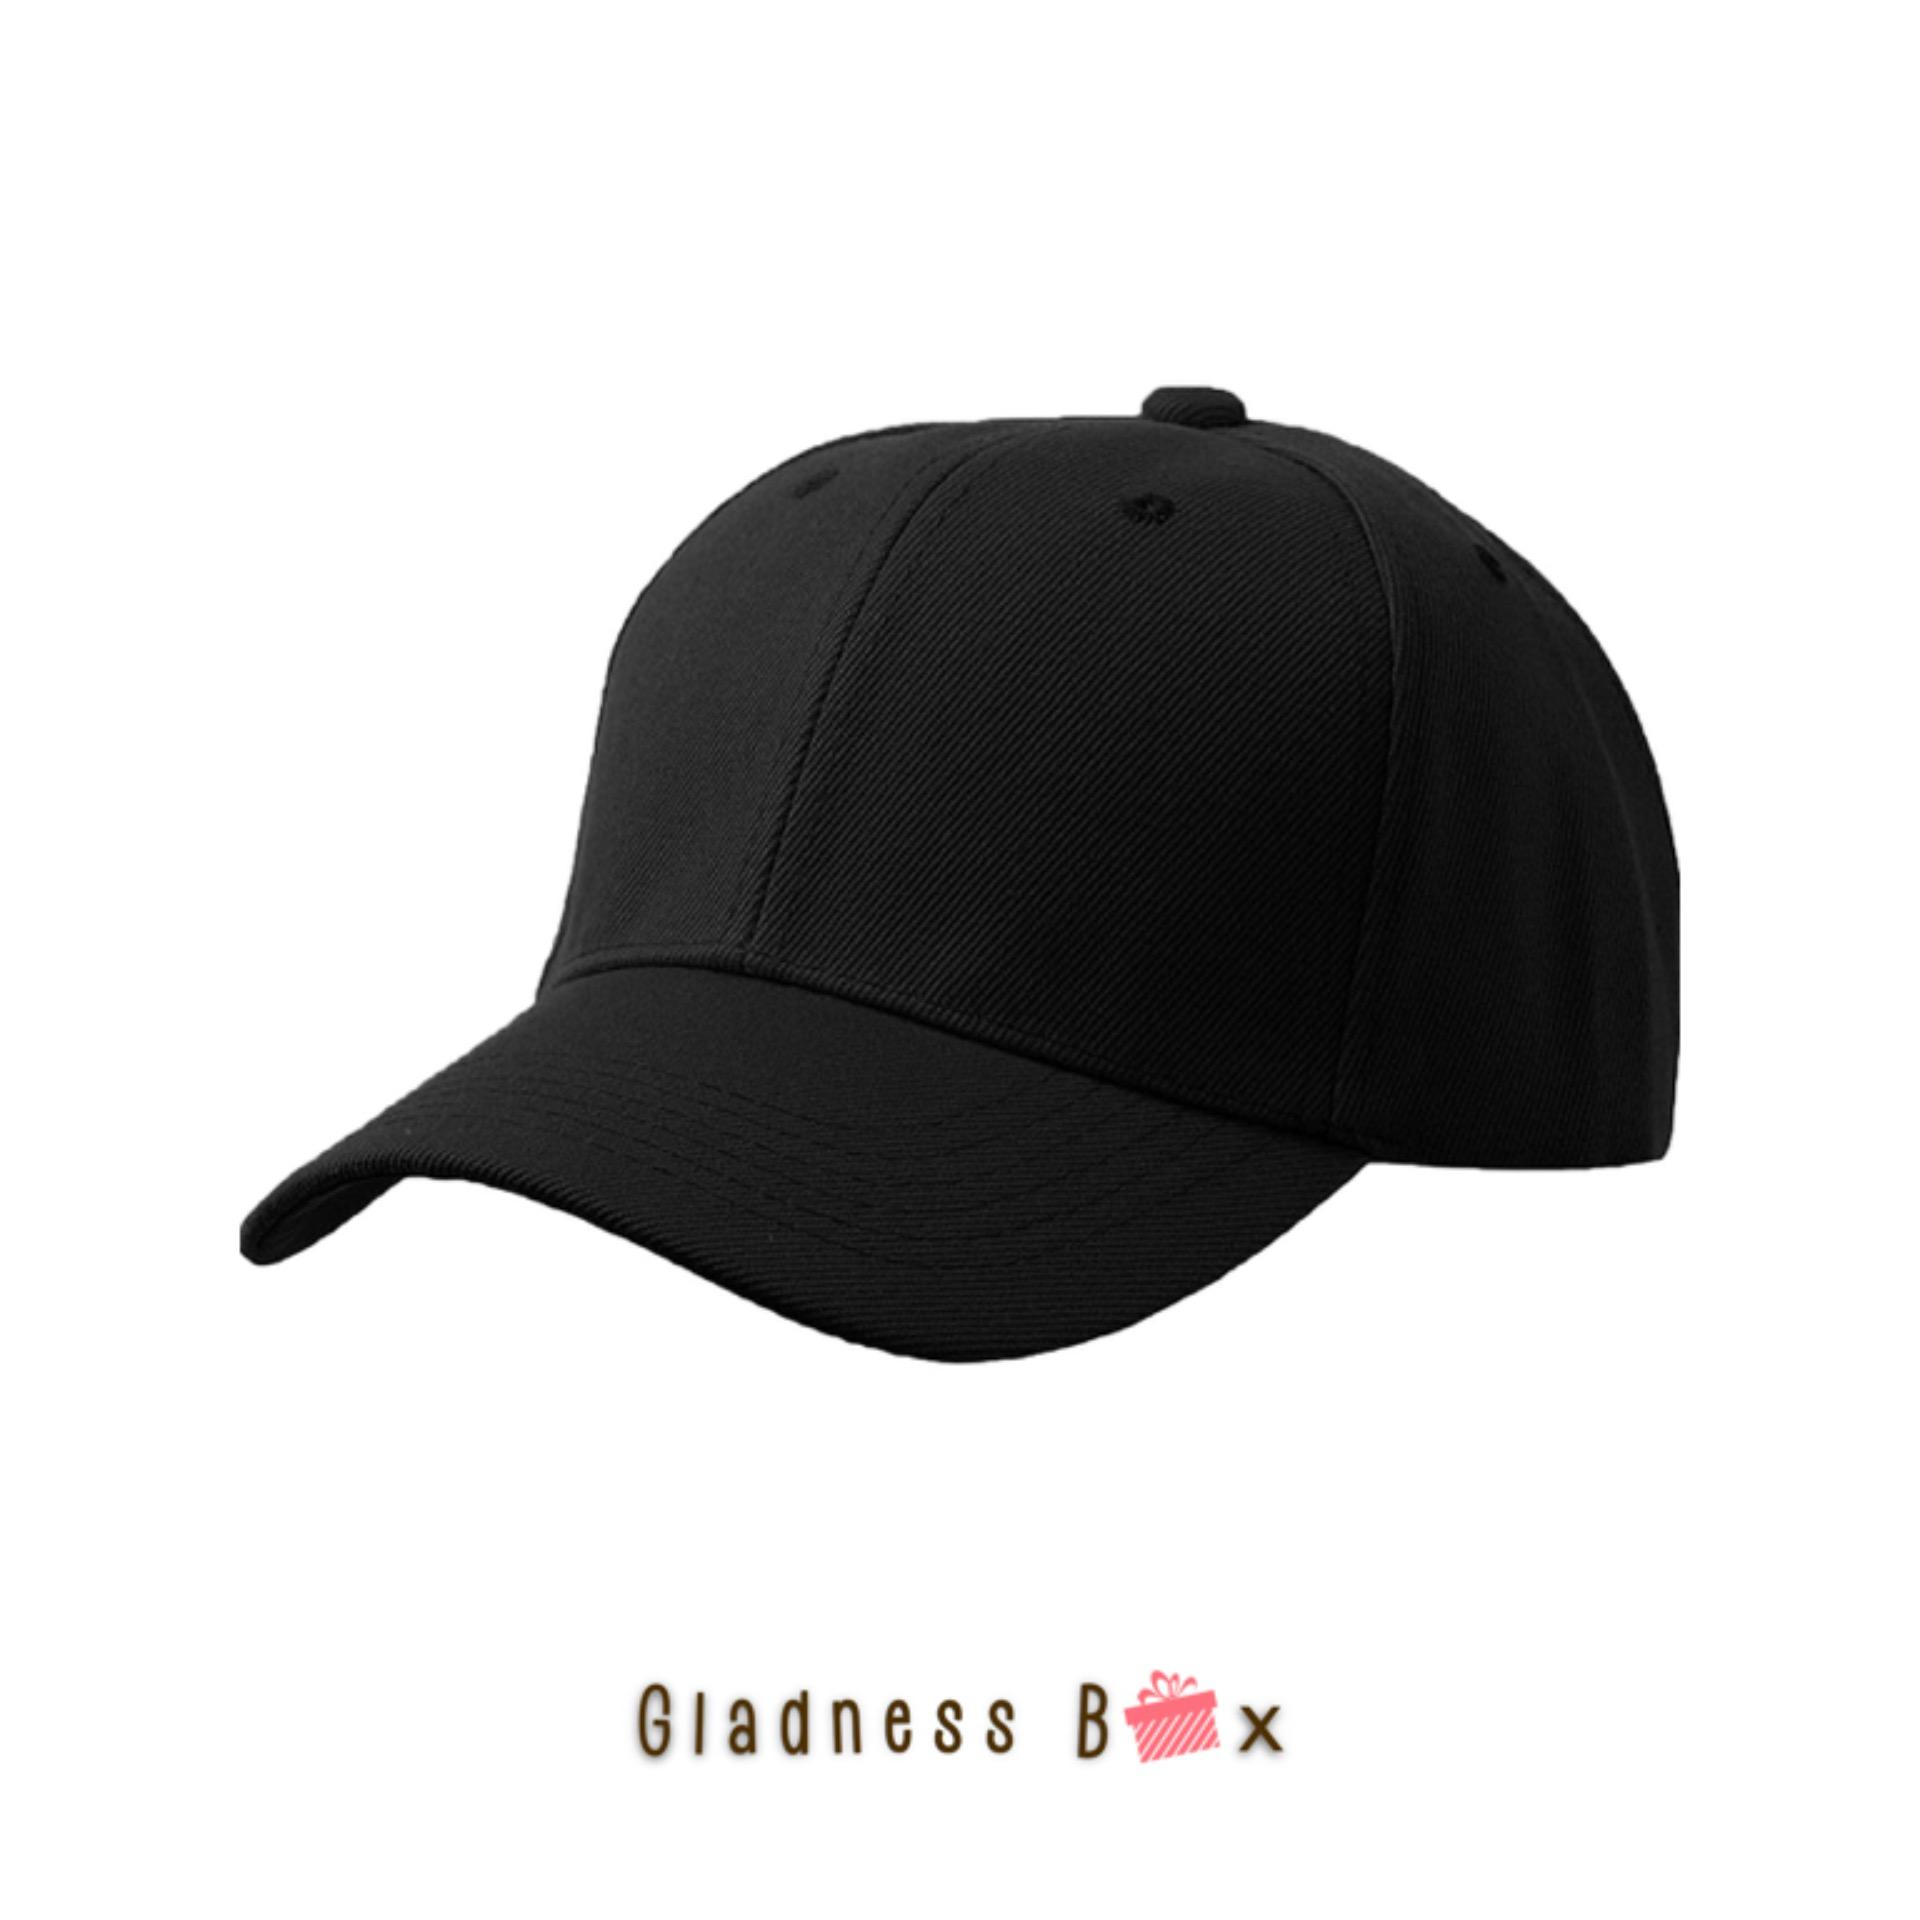 7a408cb992e Gladness Box High Quality Plain Baseball Cap for Men Women Unisex